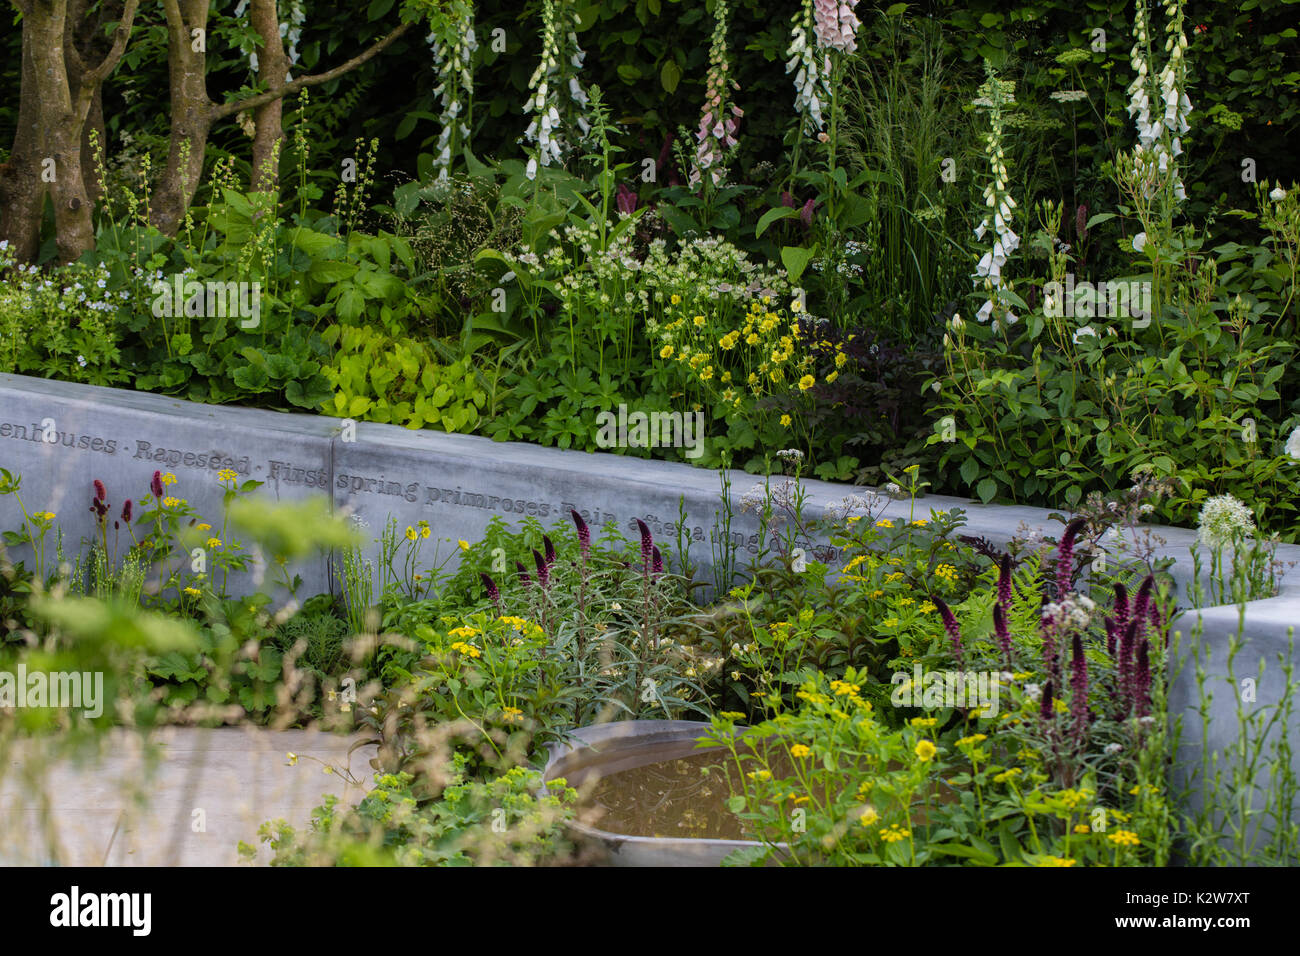 BBC Radio, The Jo Whiley Garden, designers Tamara Bridge and Kate Savill - Stock Image